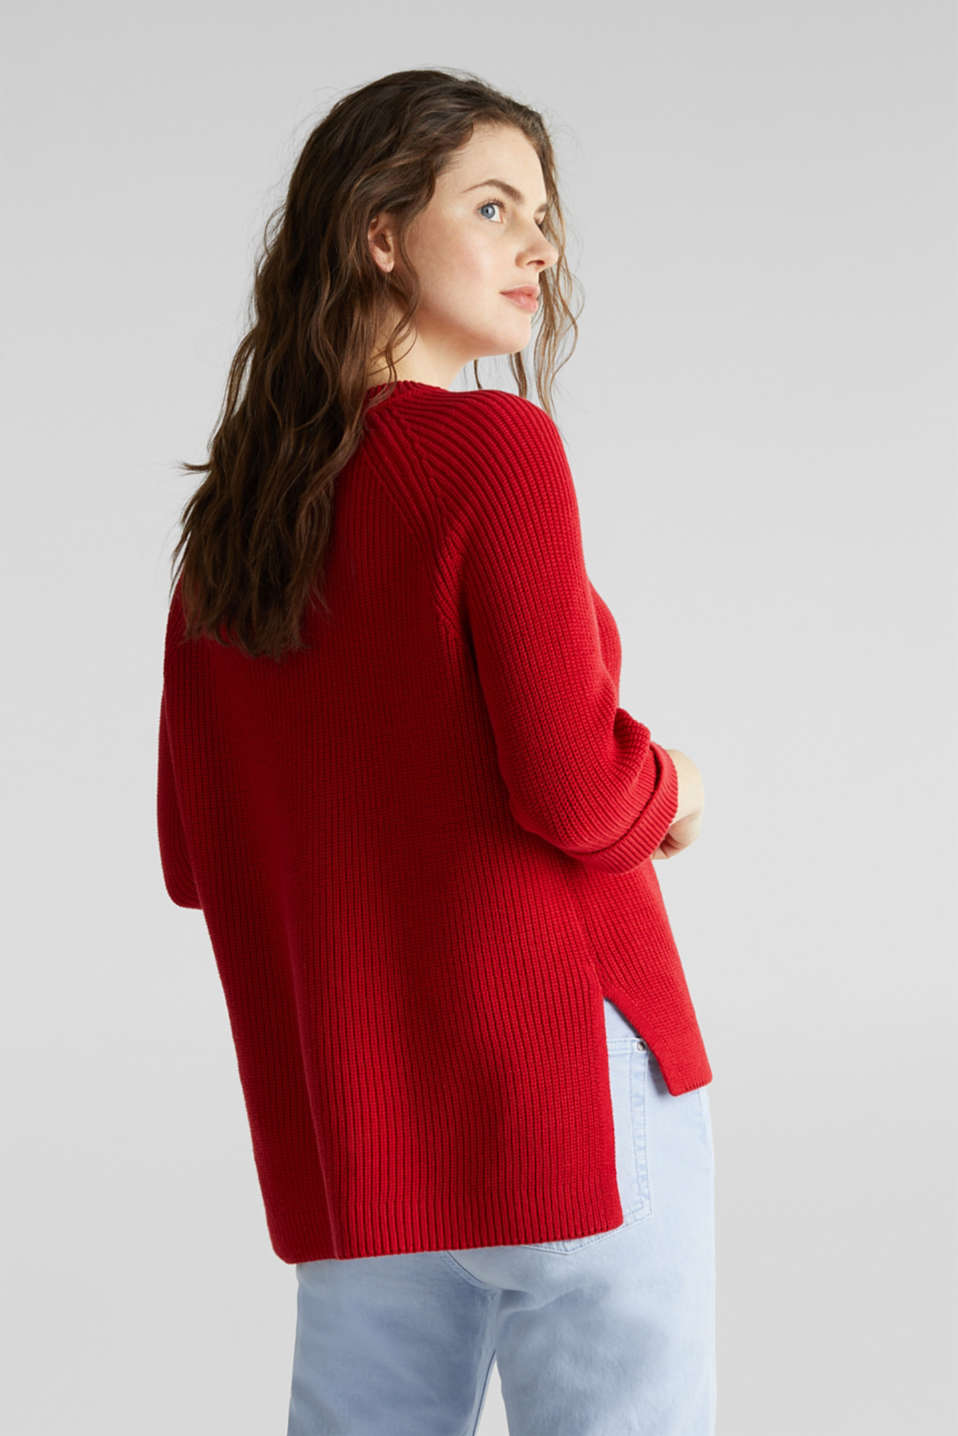 Jumper with a high-low hem, 100% cotton, DARK RED, detail image number 2